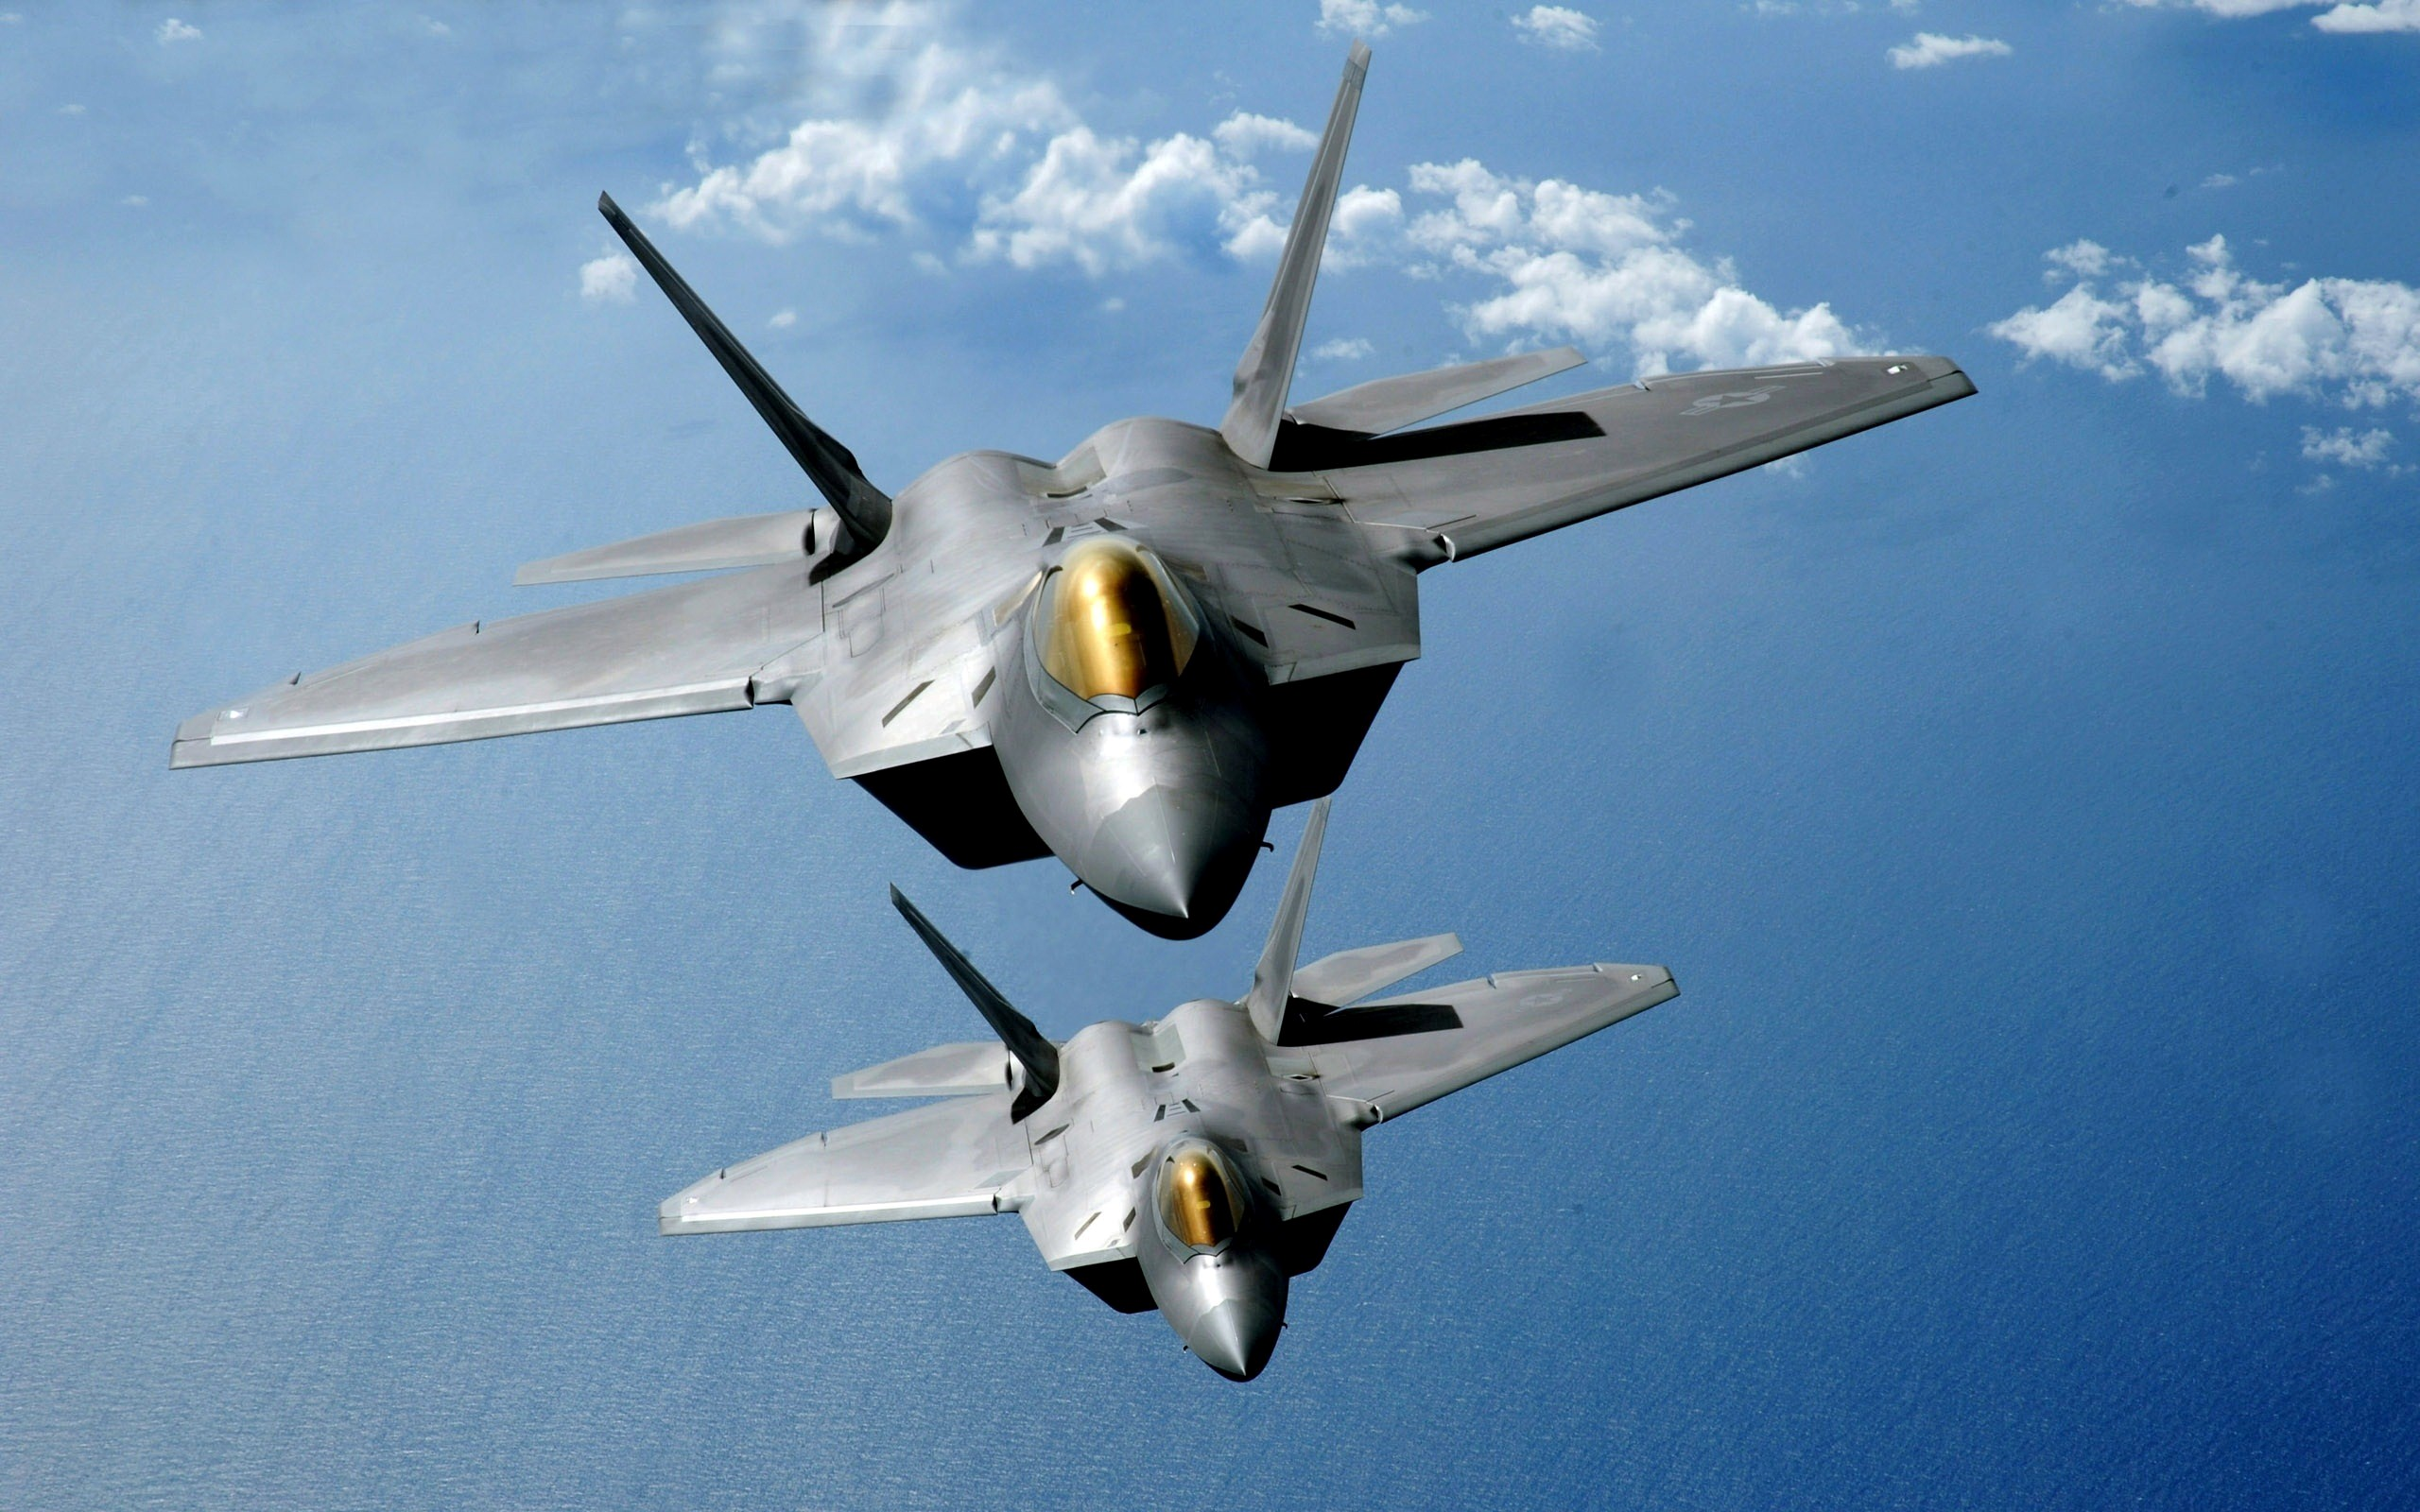 downloads 913 tags airplanes plane fighter plane jet plane wide 2560x1600